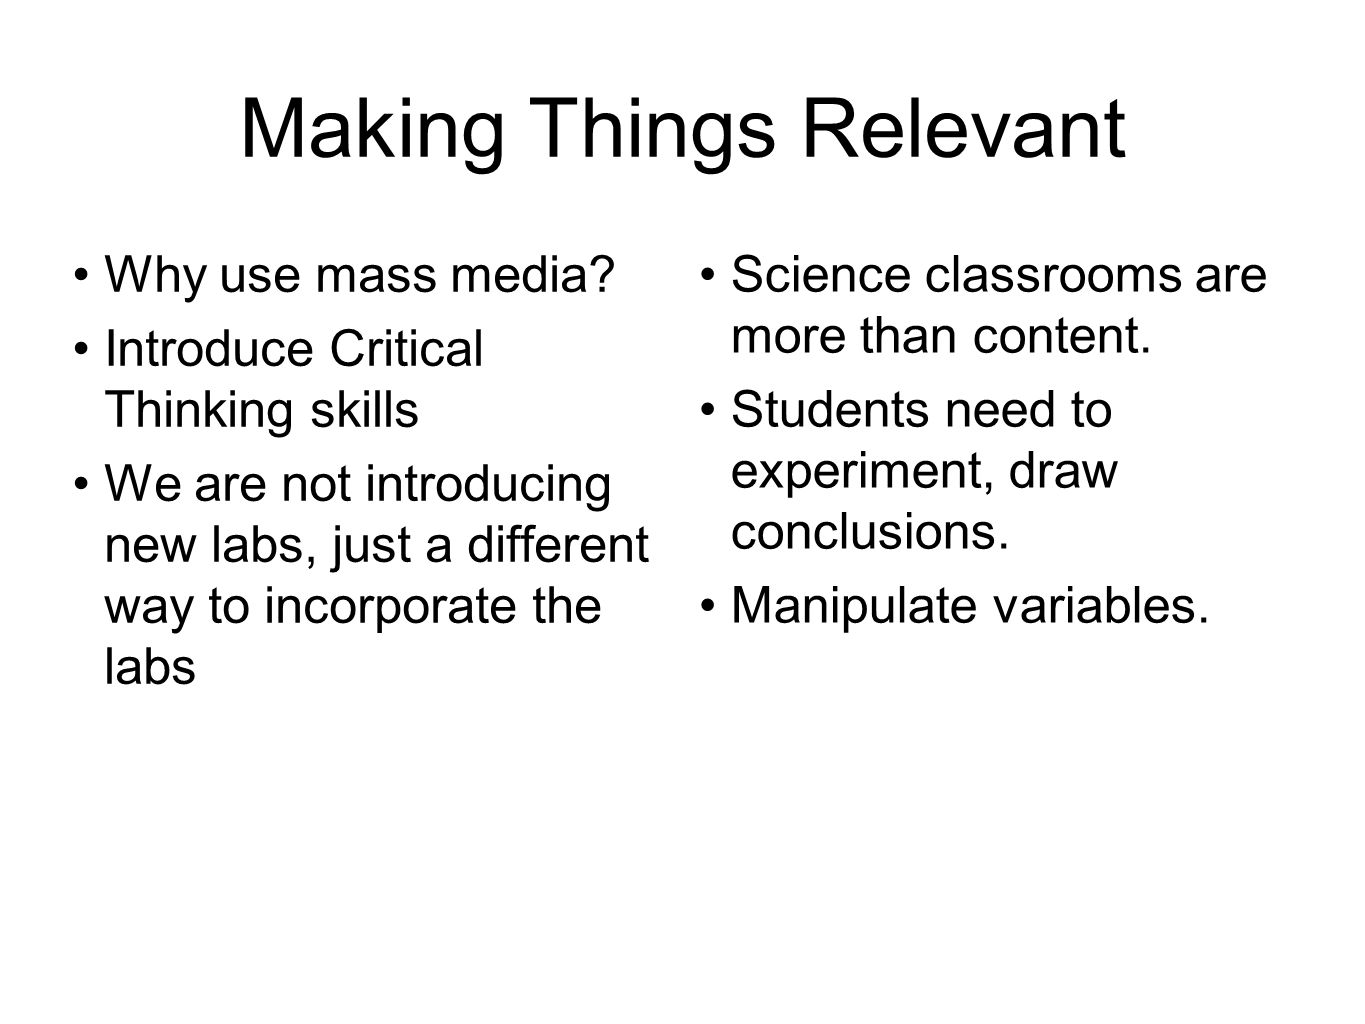 Making Things Relevant Why use mass media? Introduce Critical Thinking skills We are not introducing new labs, just a different way to incorporate the